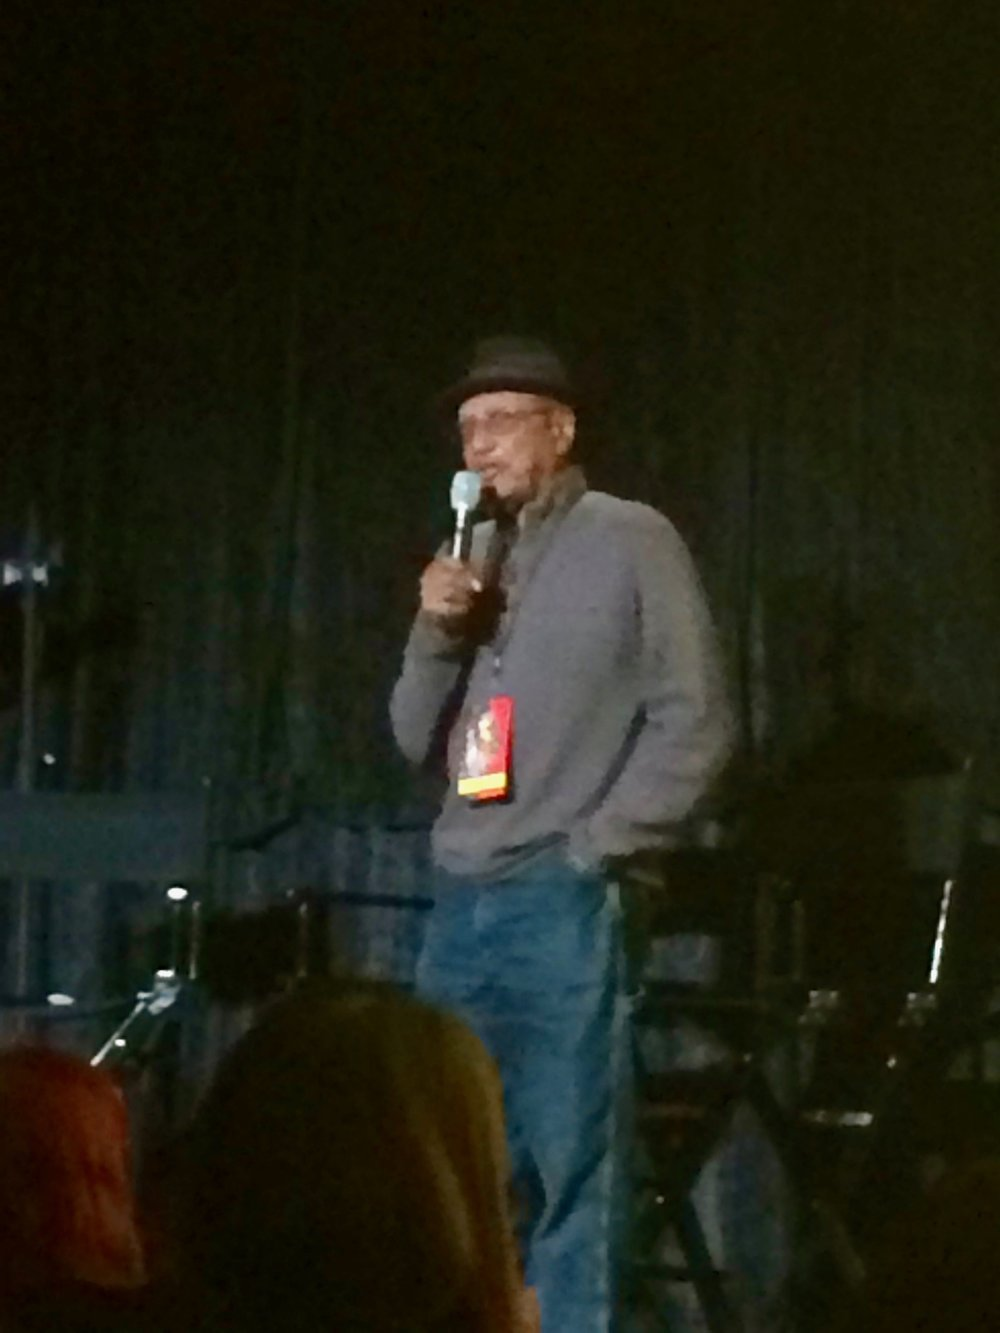 This is Floyd Norman introducing the documentary recently released about himself. Norman was the first black animator that worked at Walt Disney Animation, his first movie was Sleeping Beauty (1959).